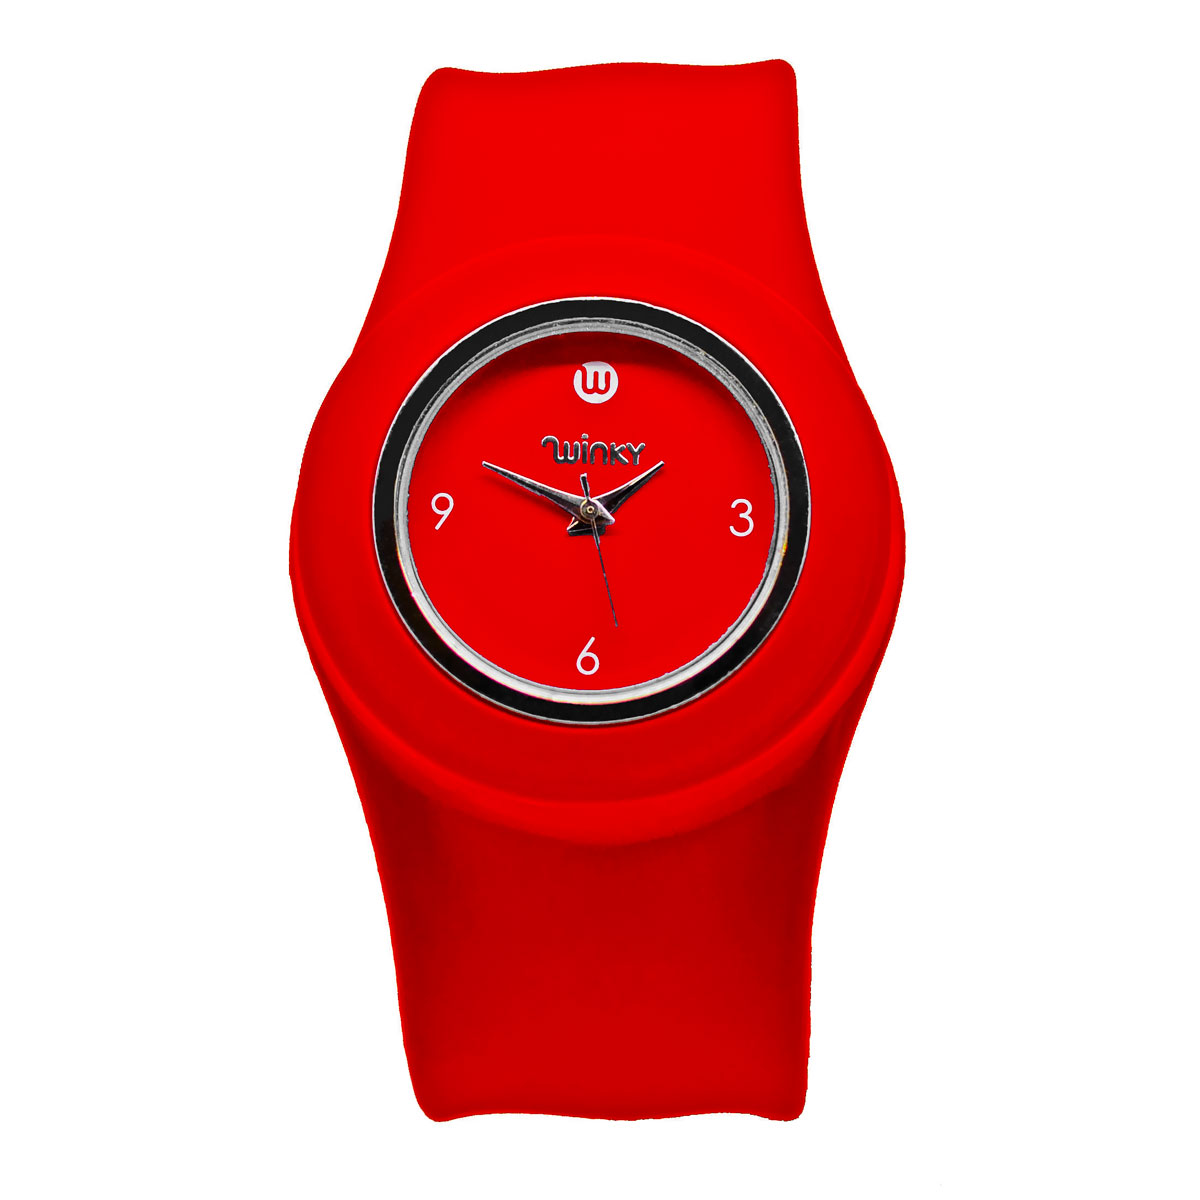 WD-SB-1004-Apple-Red-Slap-watch